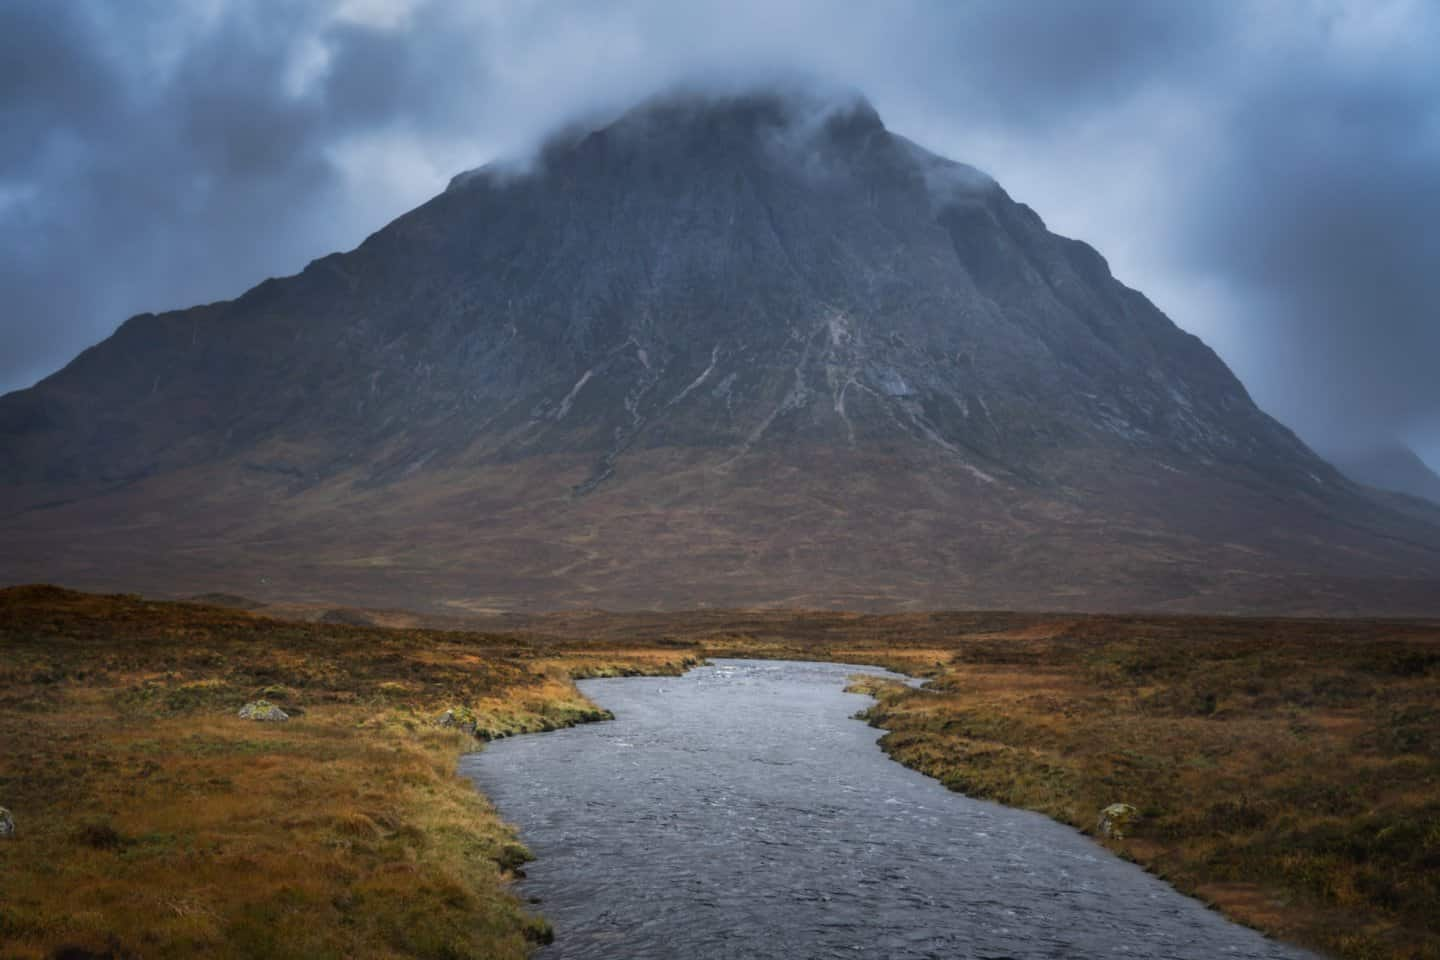 The prettiest drive during 10 days in Scotland was on the road to Glencoe.